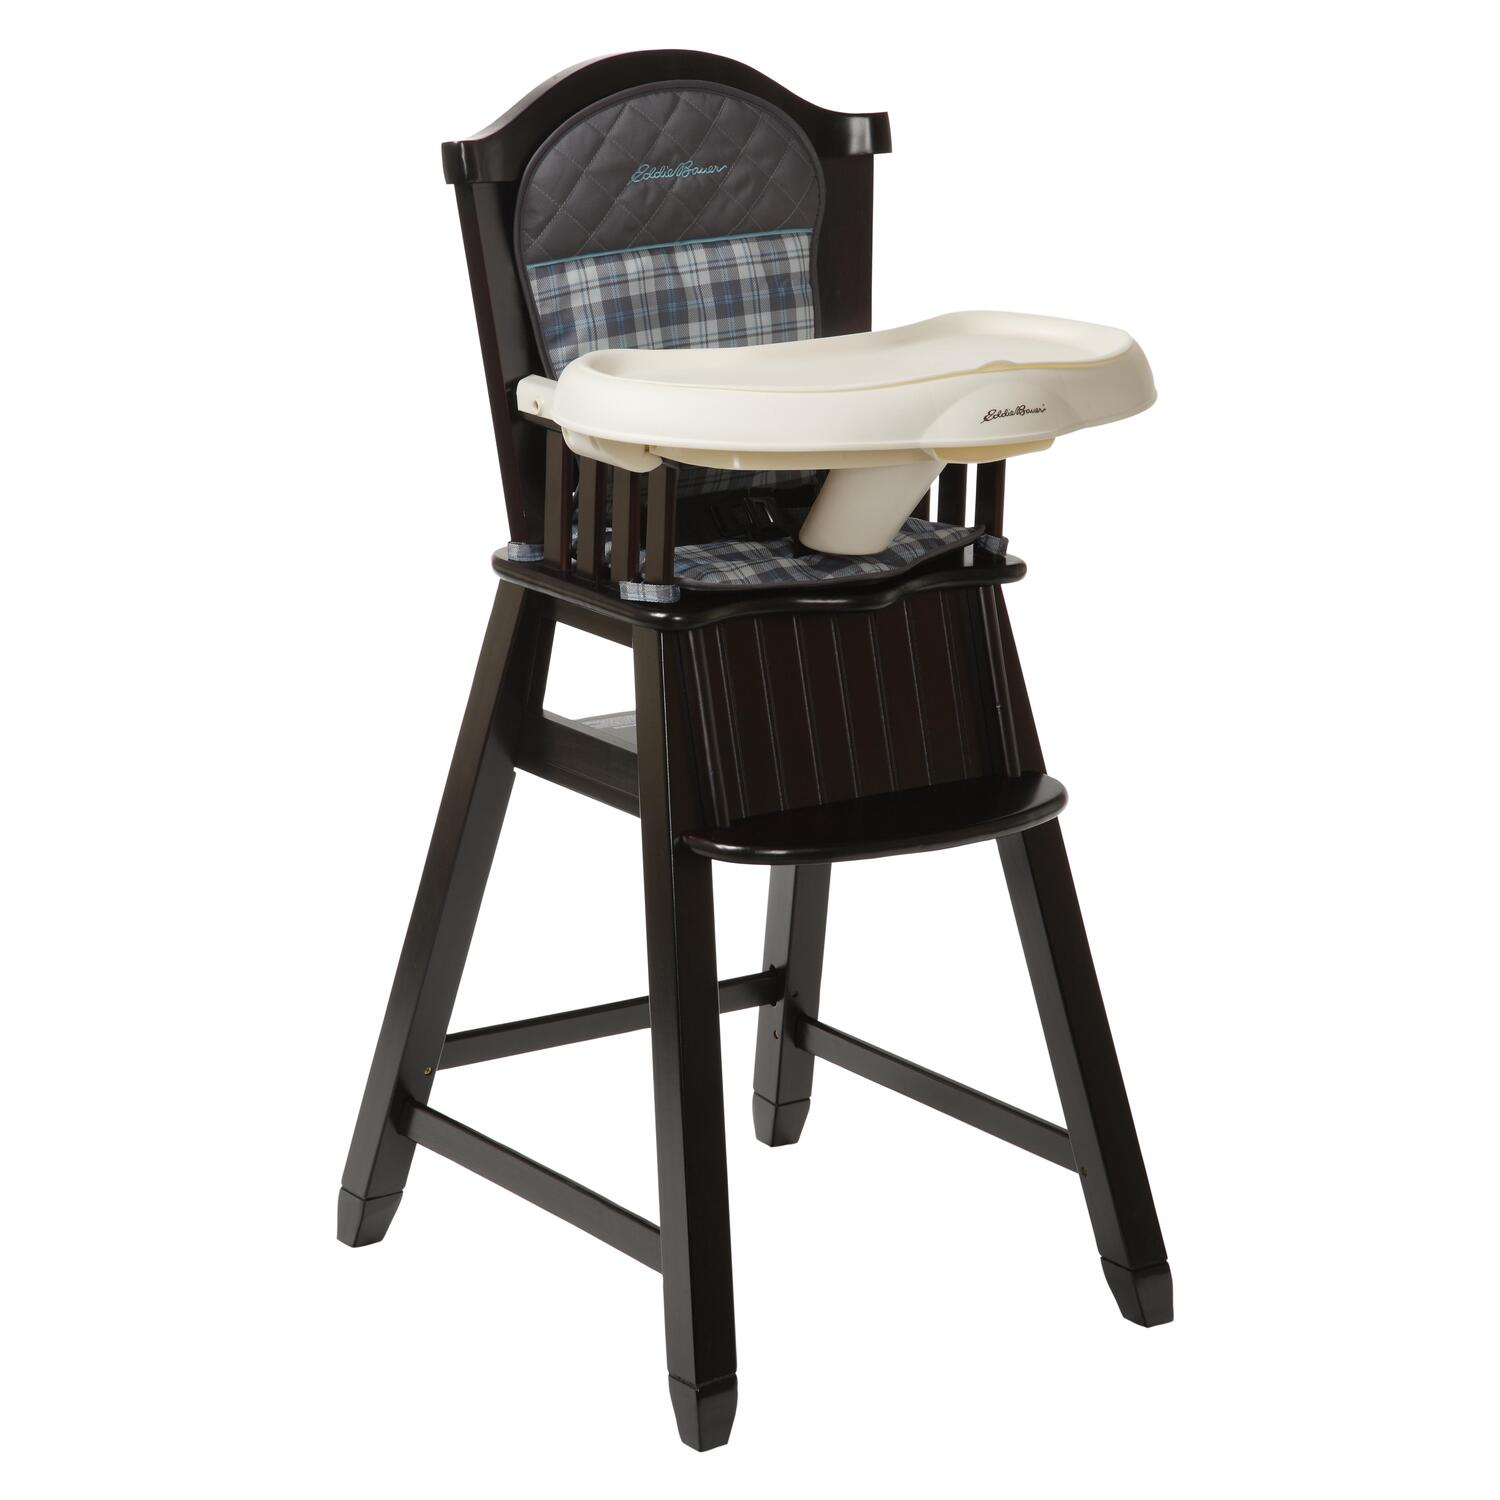 wooden high chairs for babies restoration hardware madeline chair eddie bauer wood ridgewood